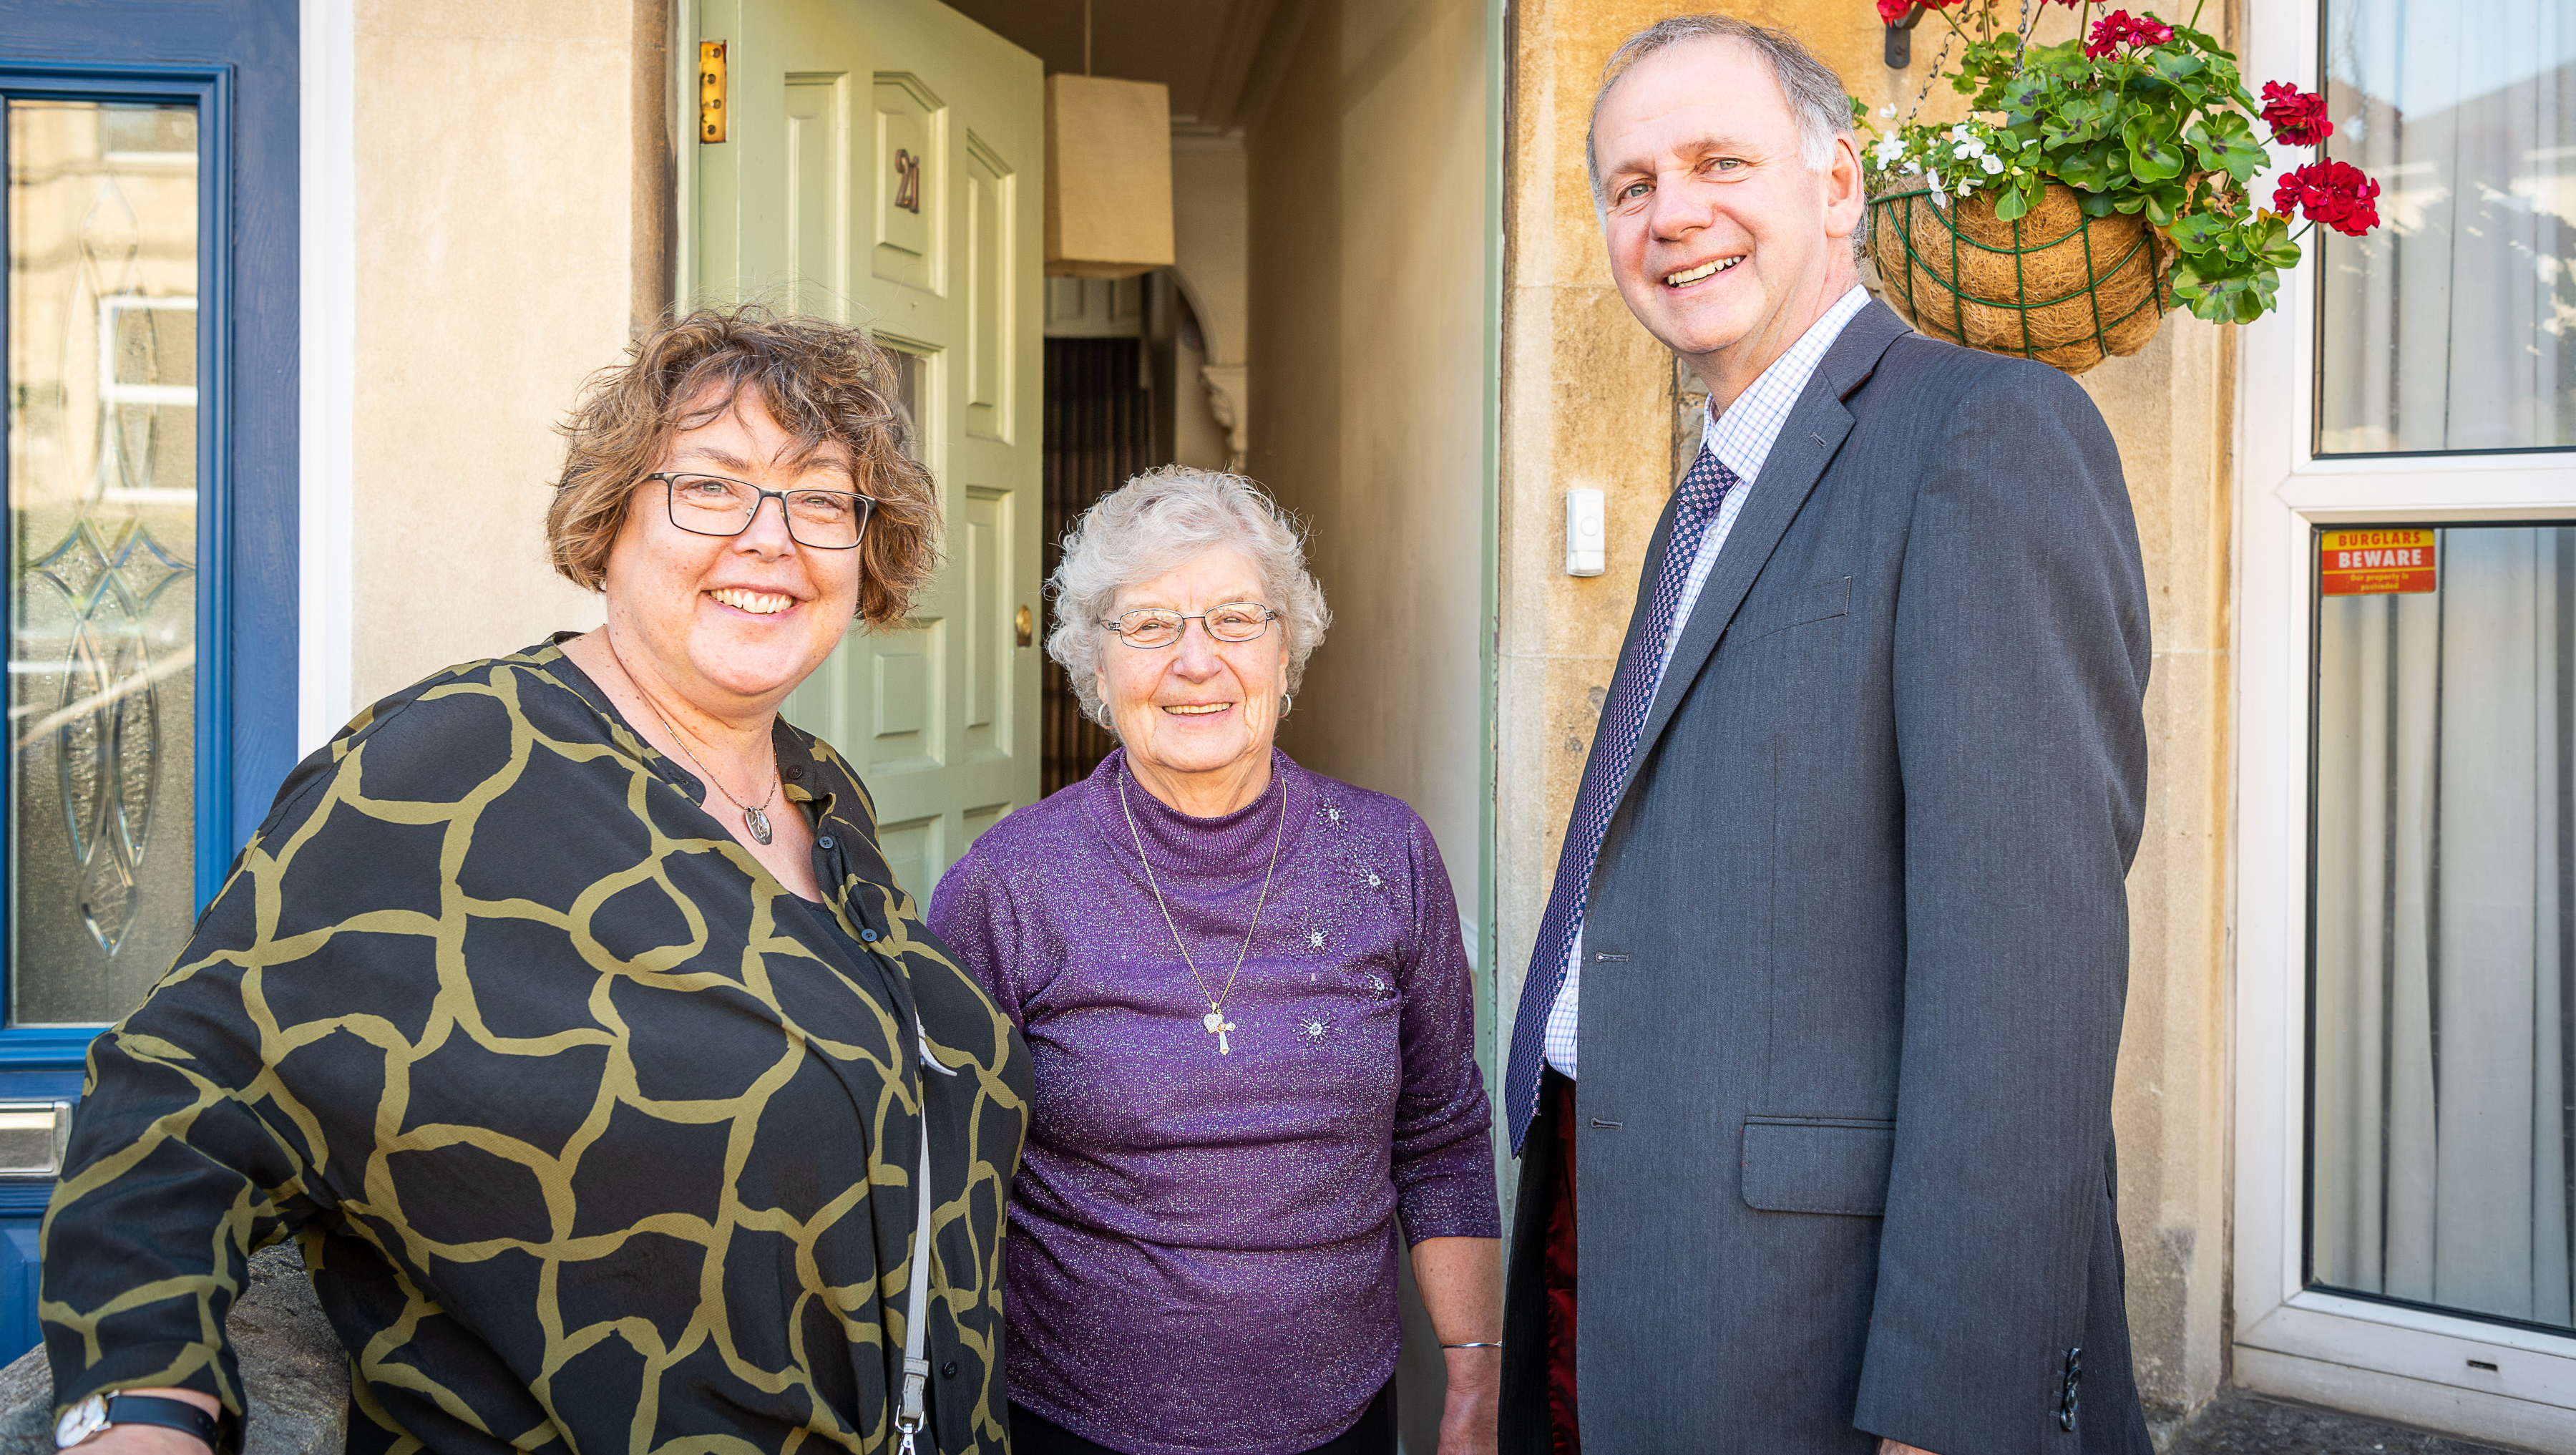 Bath Spa University's Vice-Chancellor, Professor Sue Rigby (left), and the University of Bath's Acting Vice-Chancellor, Professor Bernie Morley (right) took part in the Student Community Partnership's yearly Good Neighbour campaign.